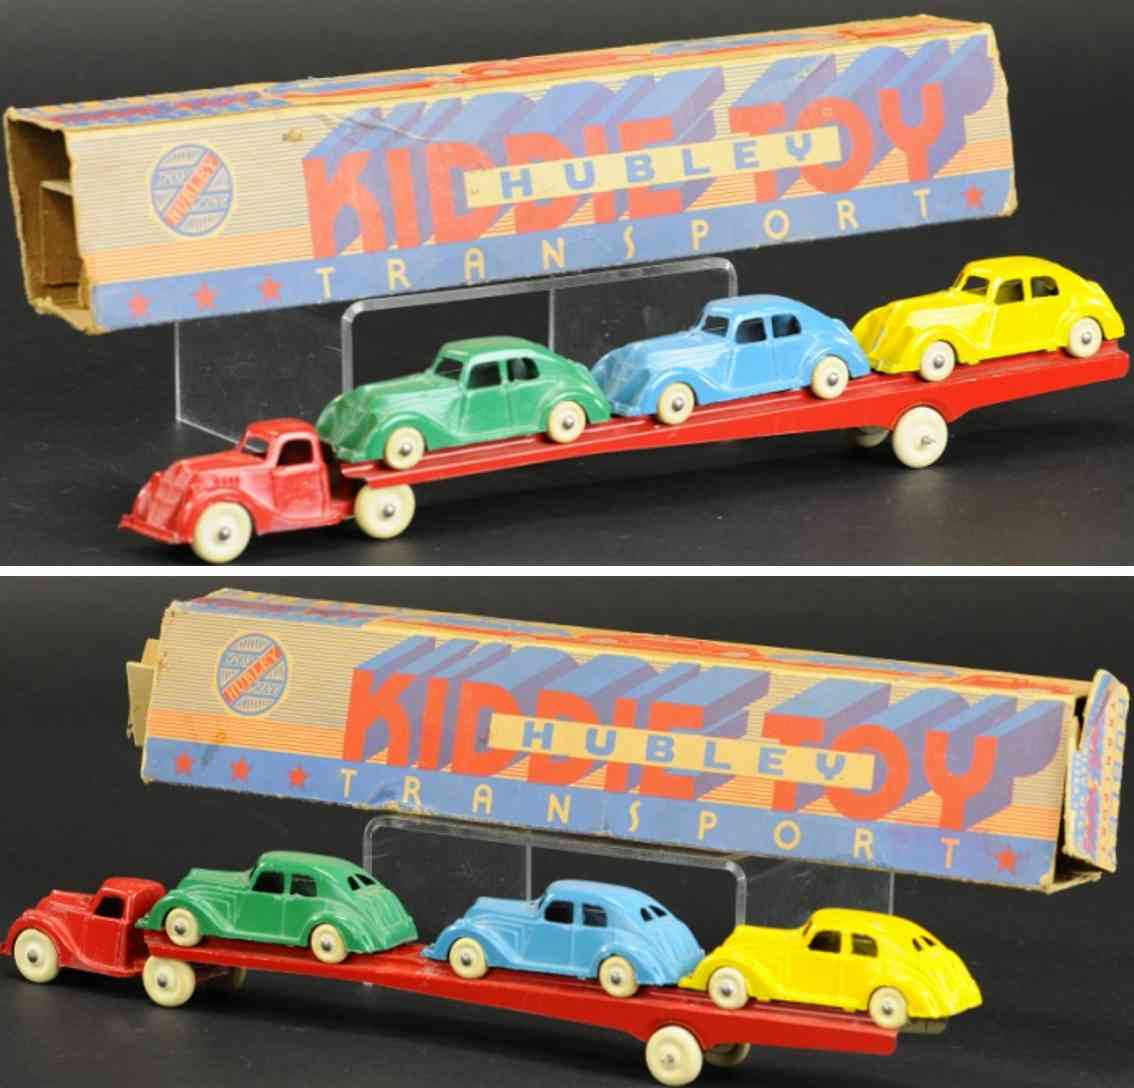 hubley cast iron toy transporter car hauler carrier red three cars